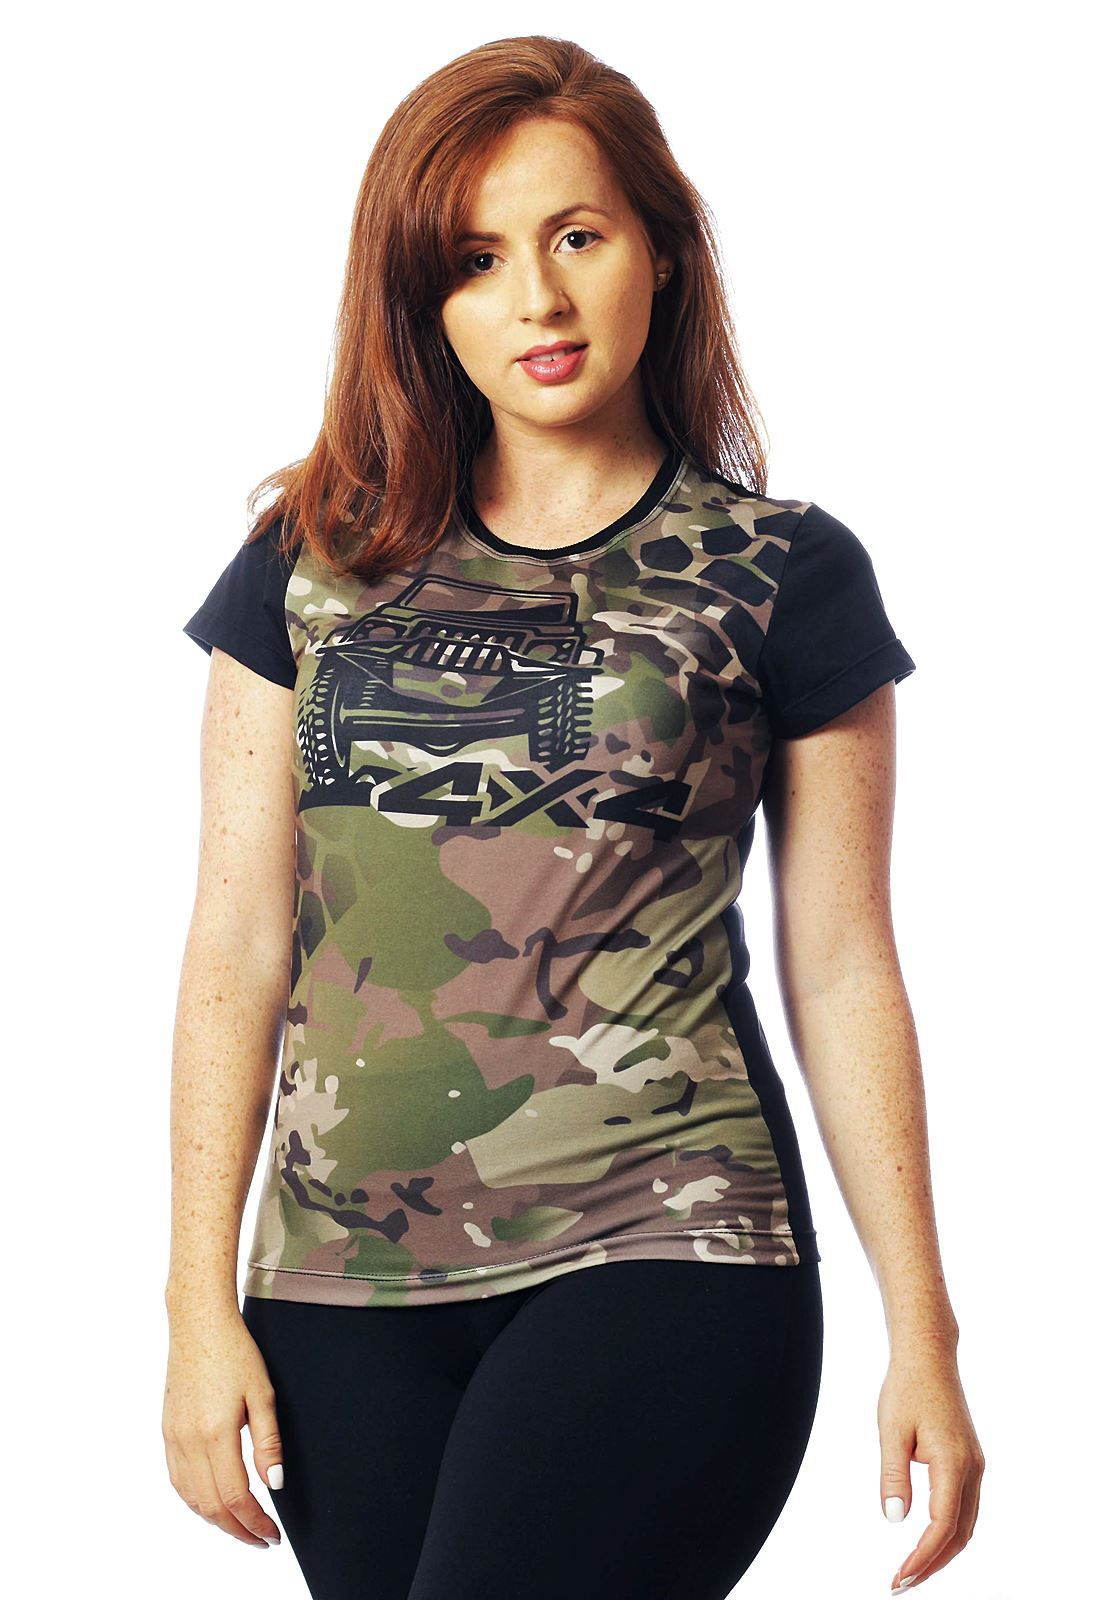 CAMISA OFF ROAD MANGA CURTA FEMININA  - REAL HUNTER OUTDOORS